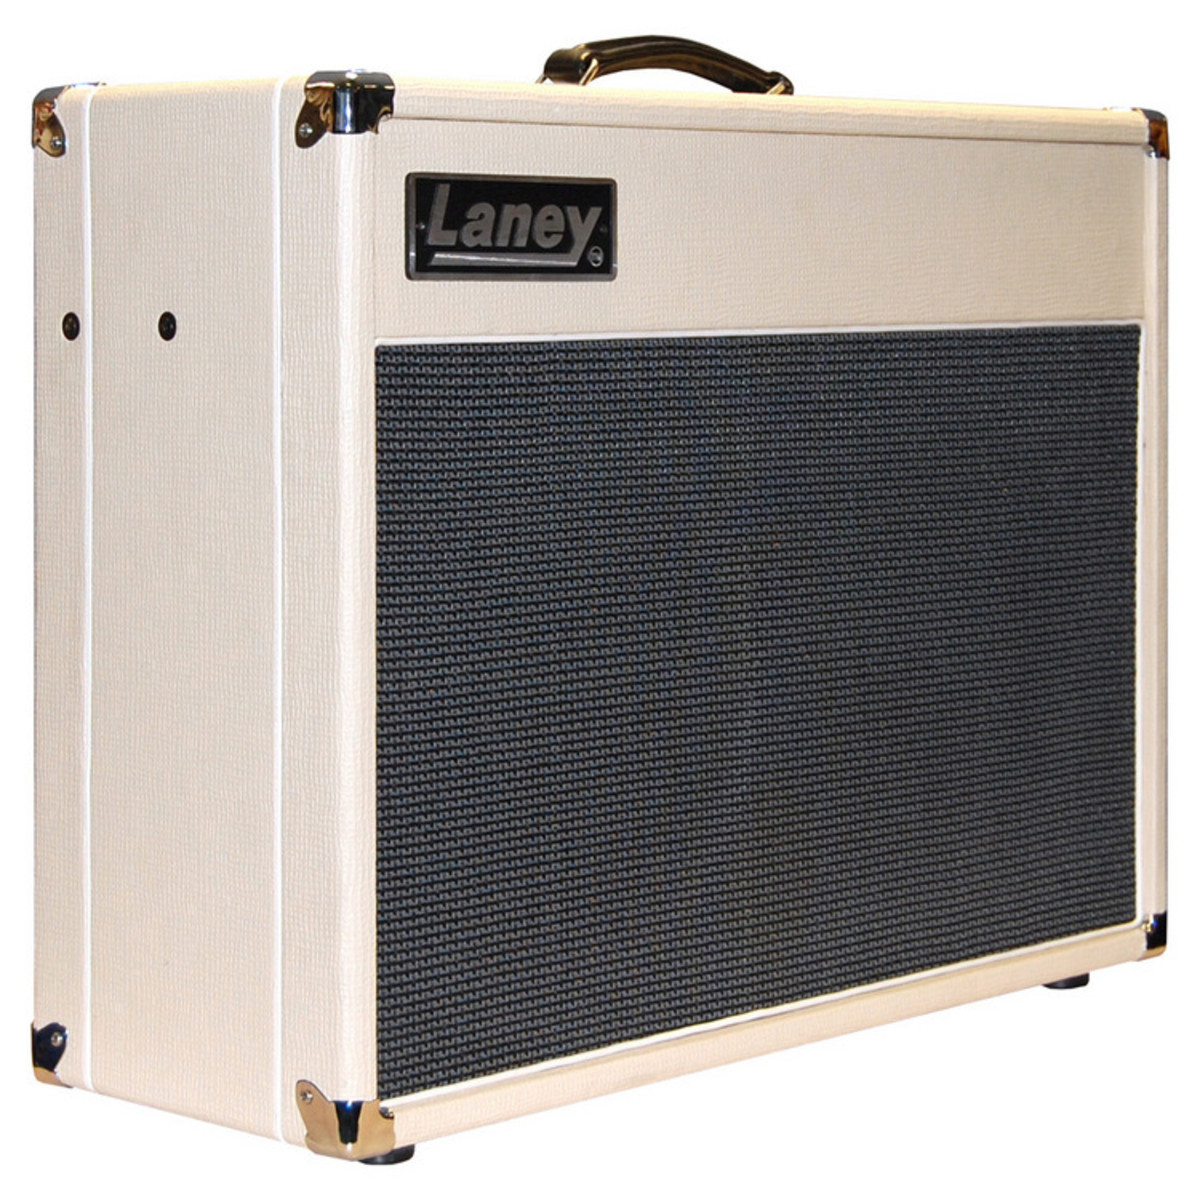 disc laney vc30 212 valve guitar combo amp white at gear4music. Black Bedroom Furniture Sets. Home Design Ideas